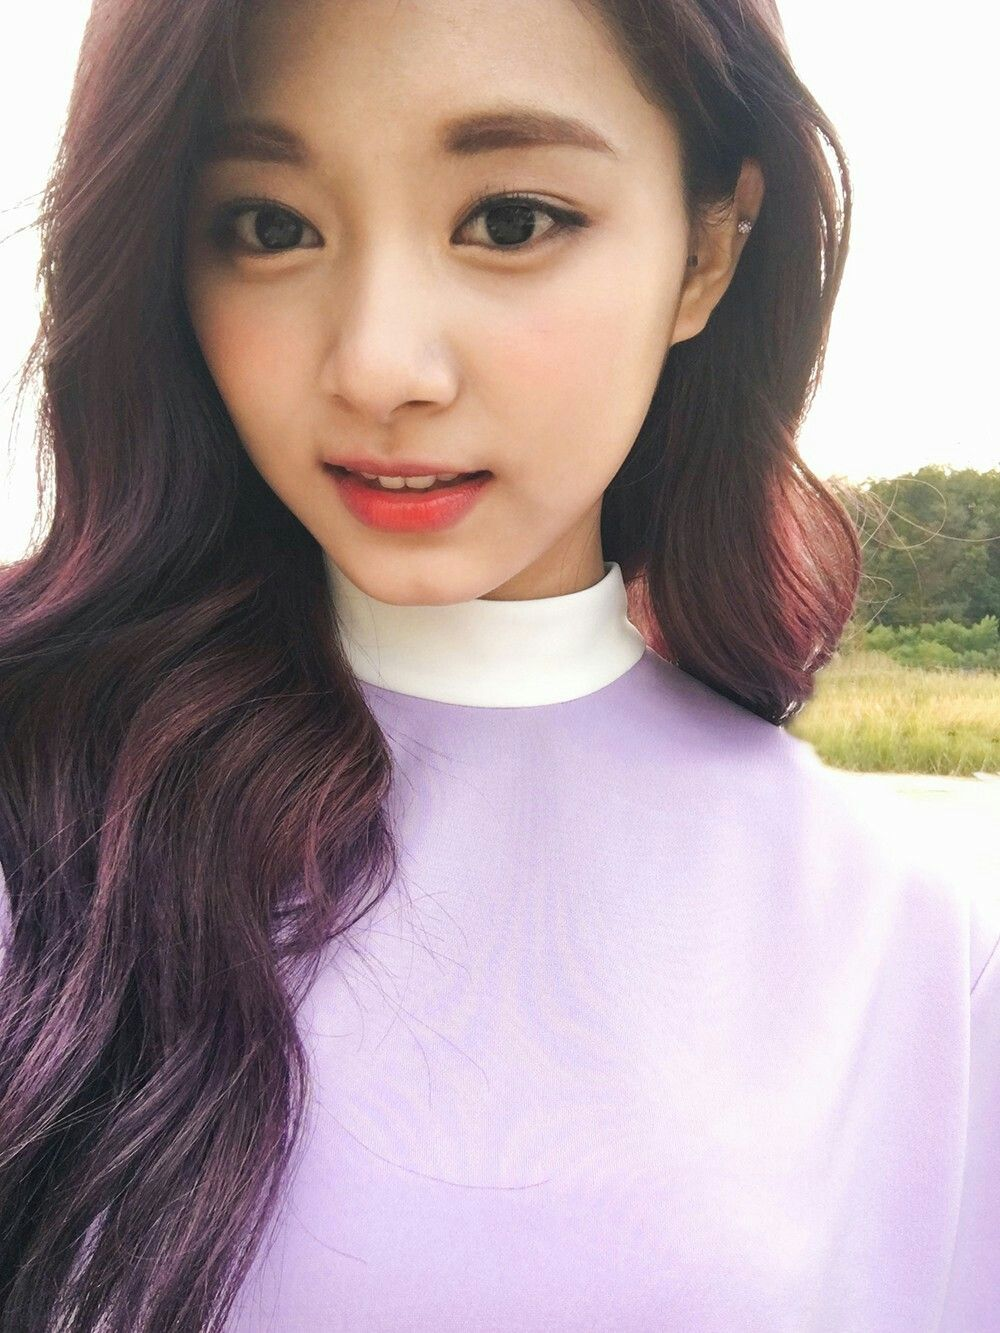 dahyun nude photo Sonchaeyoung Dahyun, Dahyun Mina, Jihyo Dahyun, Selfie World, Twices  Selfie, Mina Minatozakisana, Mina Sana, World Tzuyu, 64gxejbzck Https